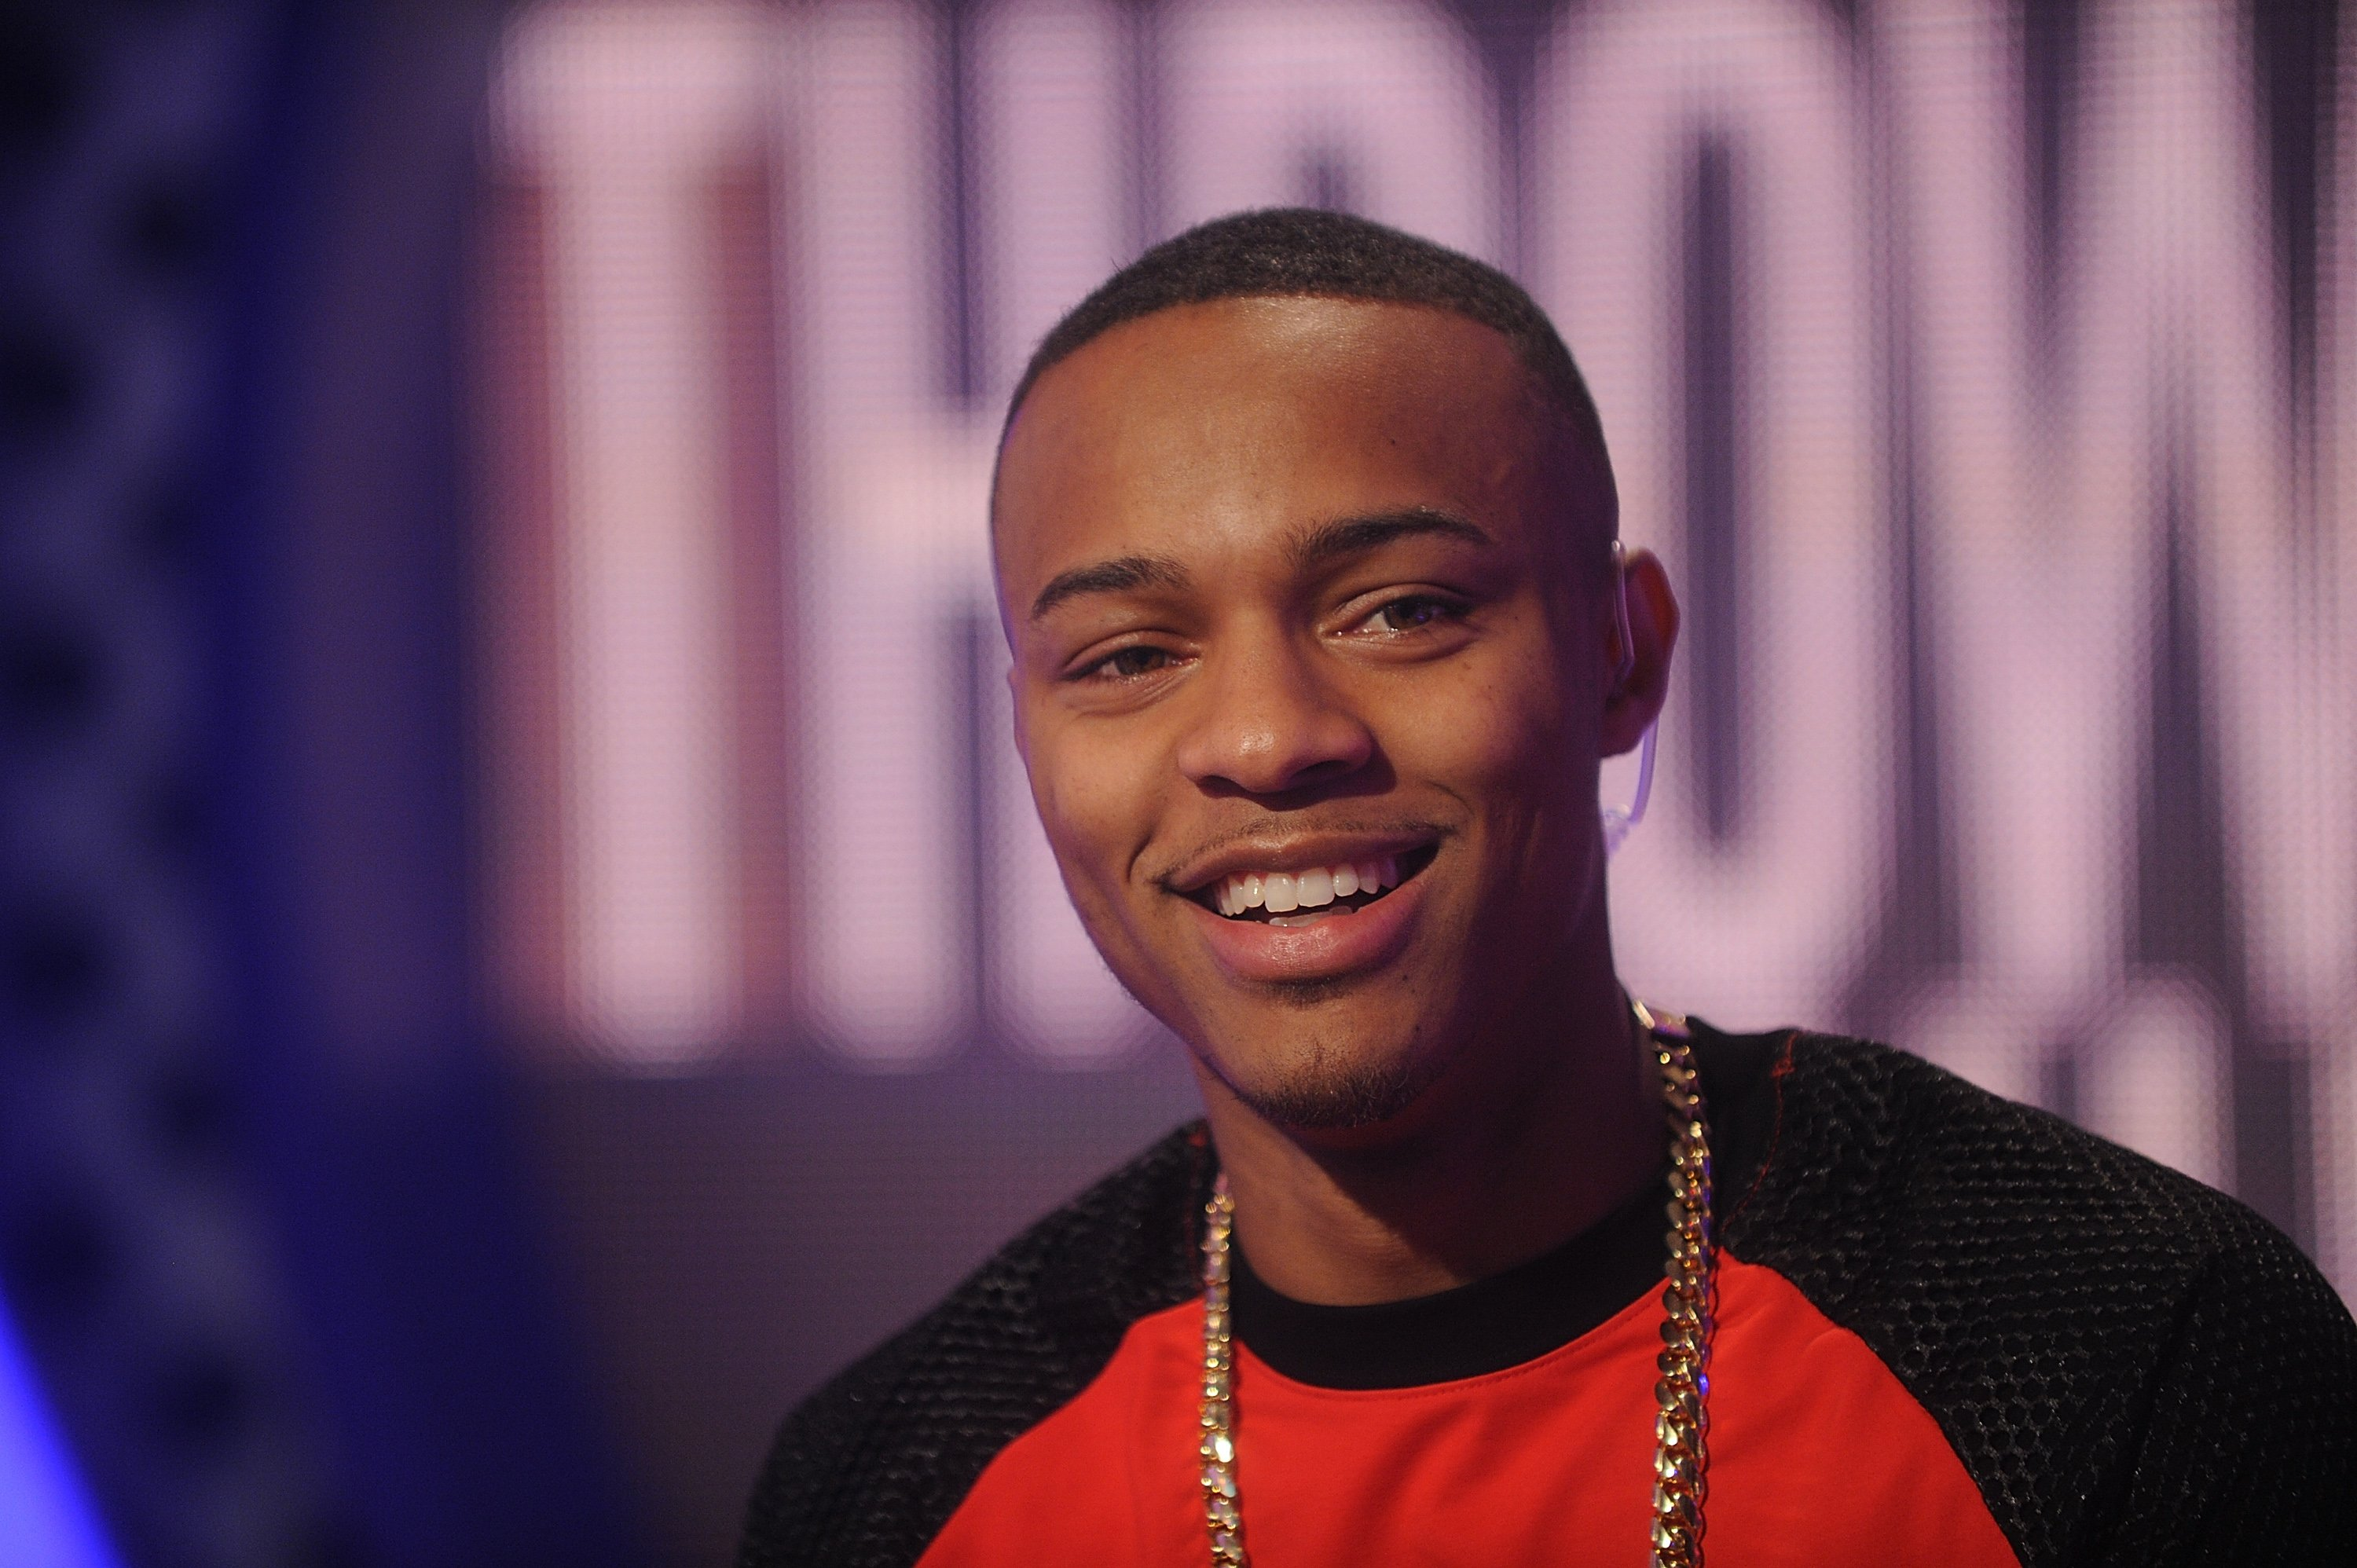 Bow Wow at the BET 106 and Park studio in New York City on June 11, 2014.   Photo: Getty Images